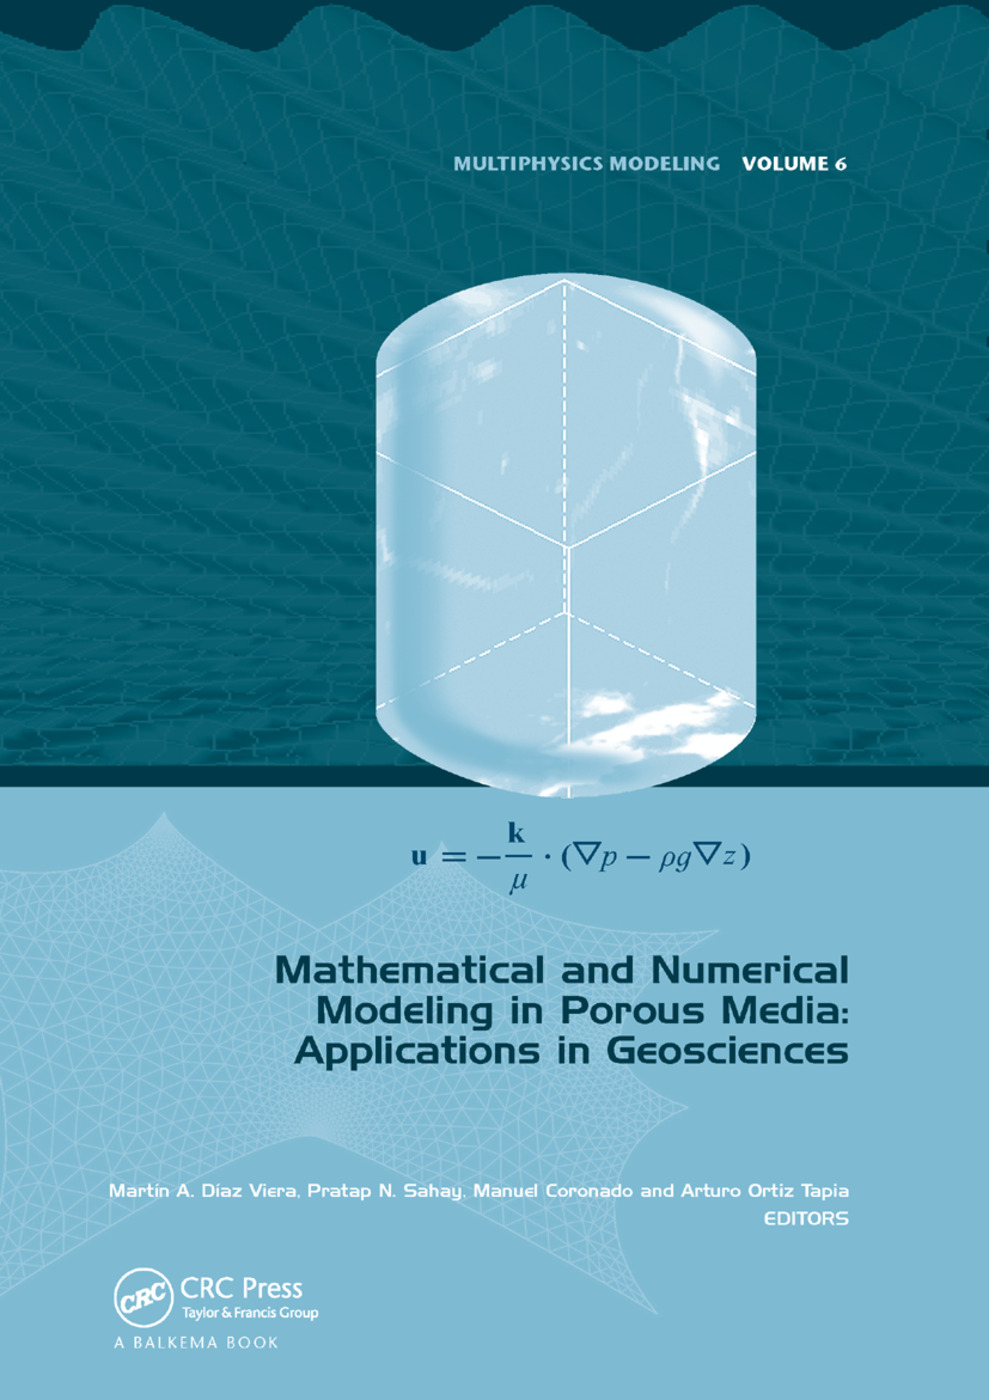 Mathematical and Numerical Modeling in Porous Media: Applications in Geosciences book cover